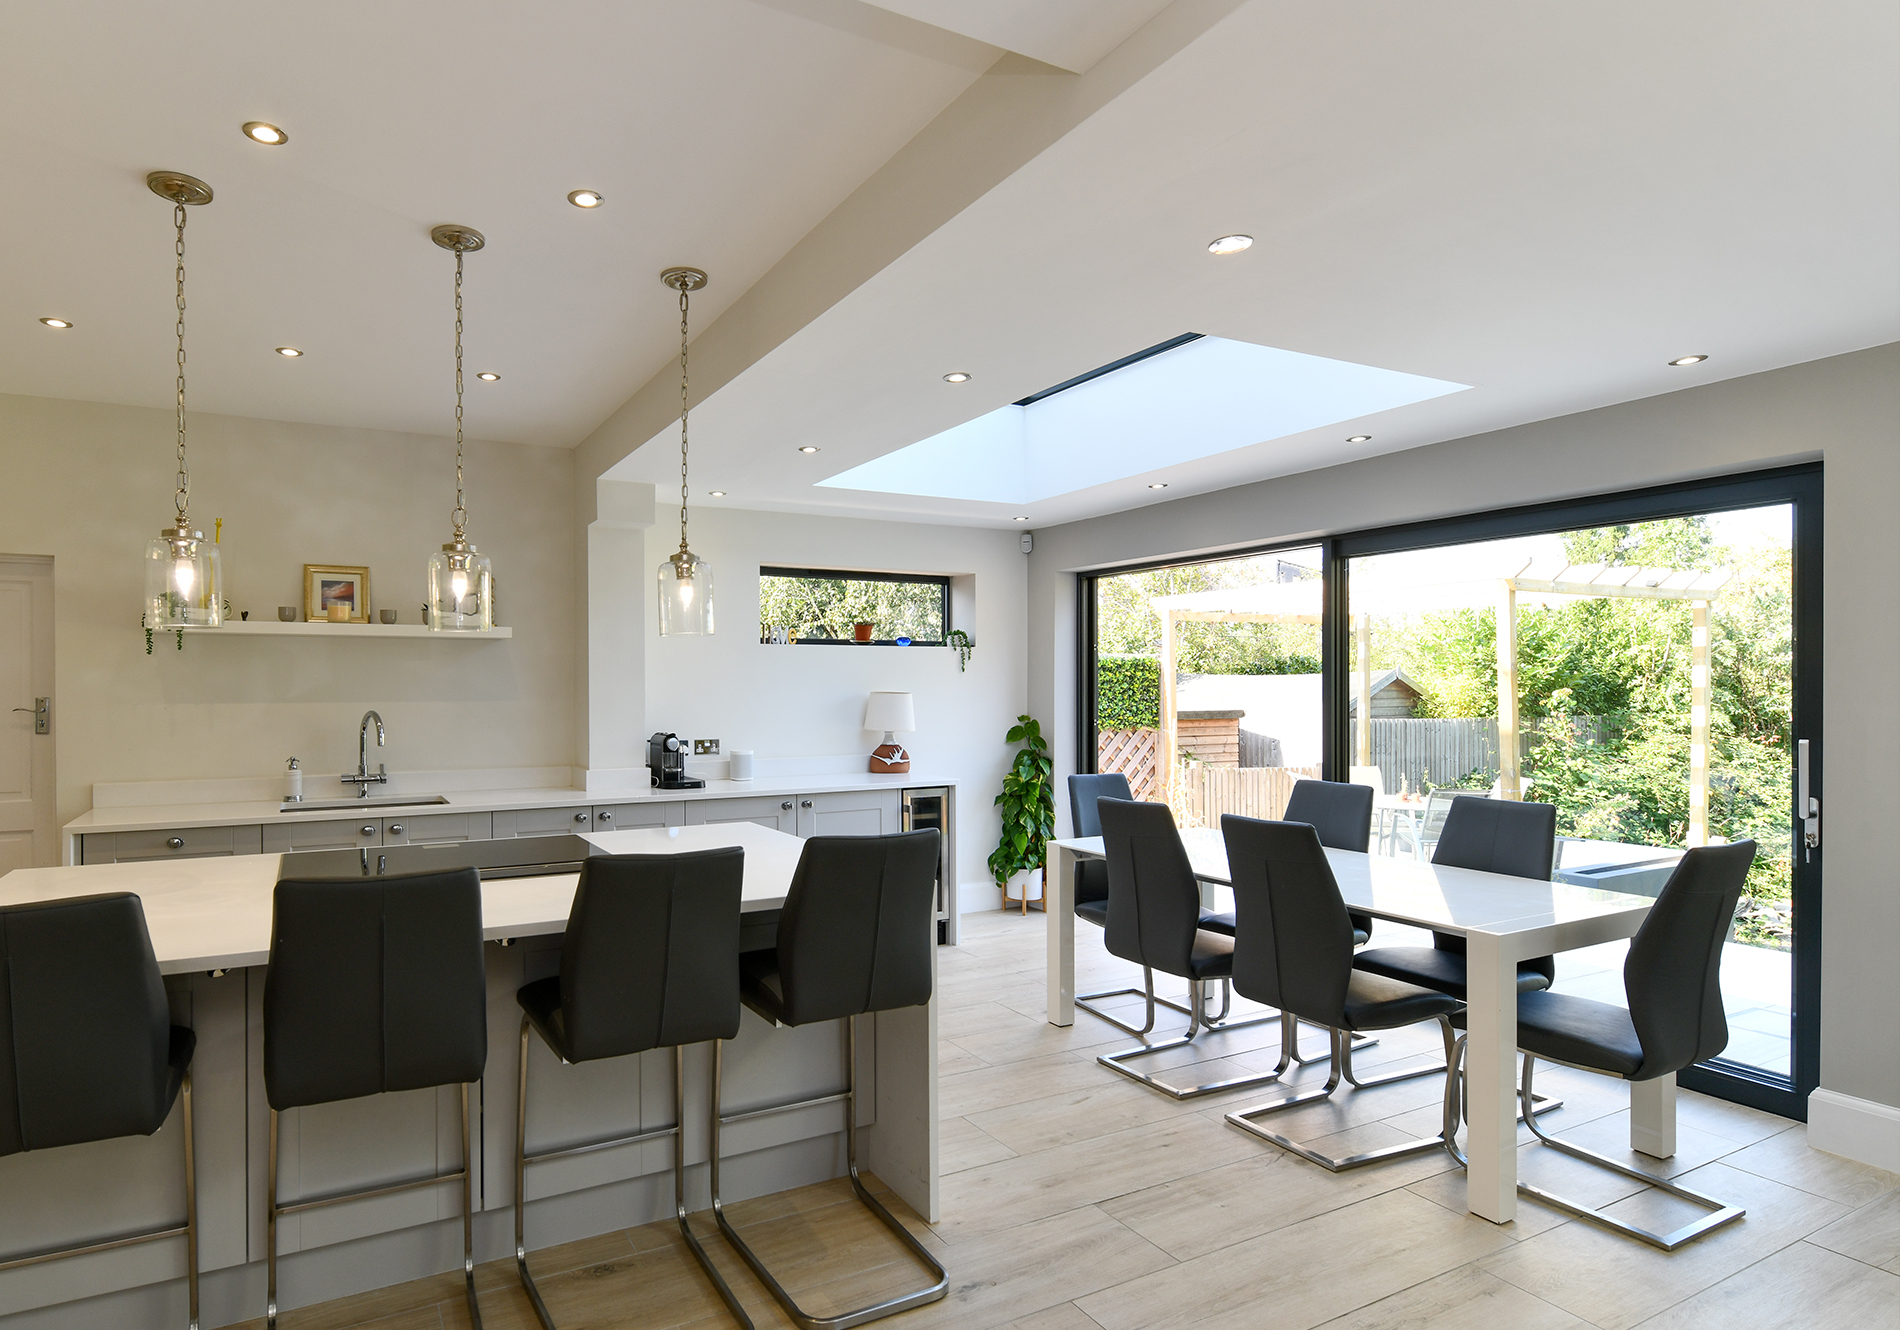 combining roof glazing, aluminium windows and sliding doors by Exact Architectural Glazing